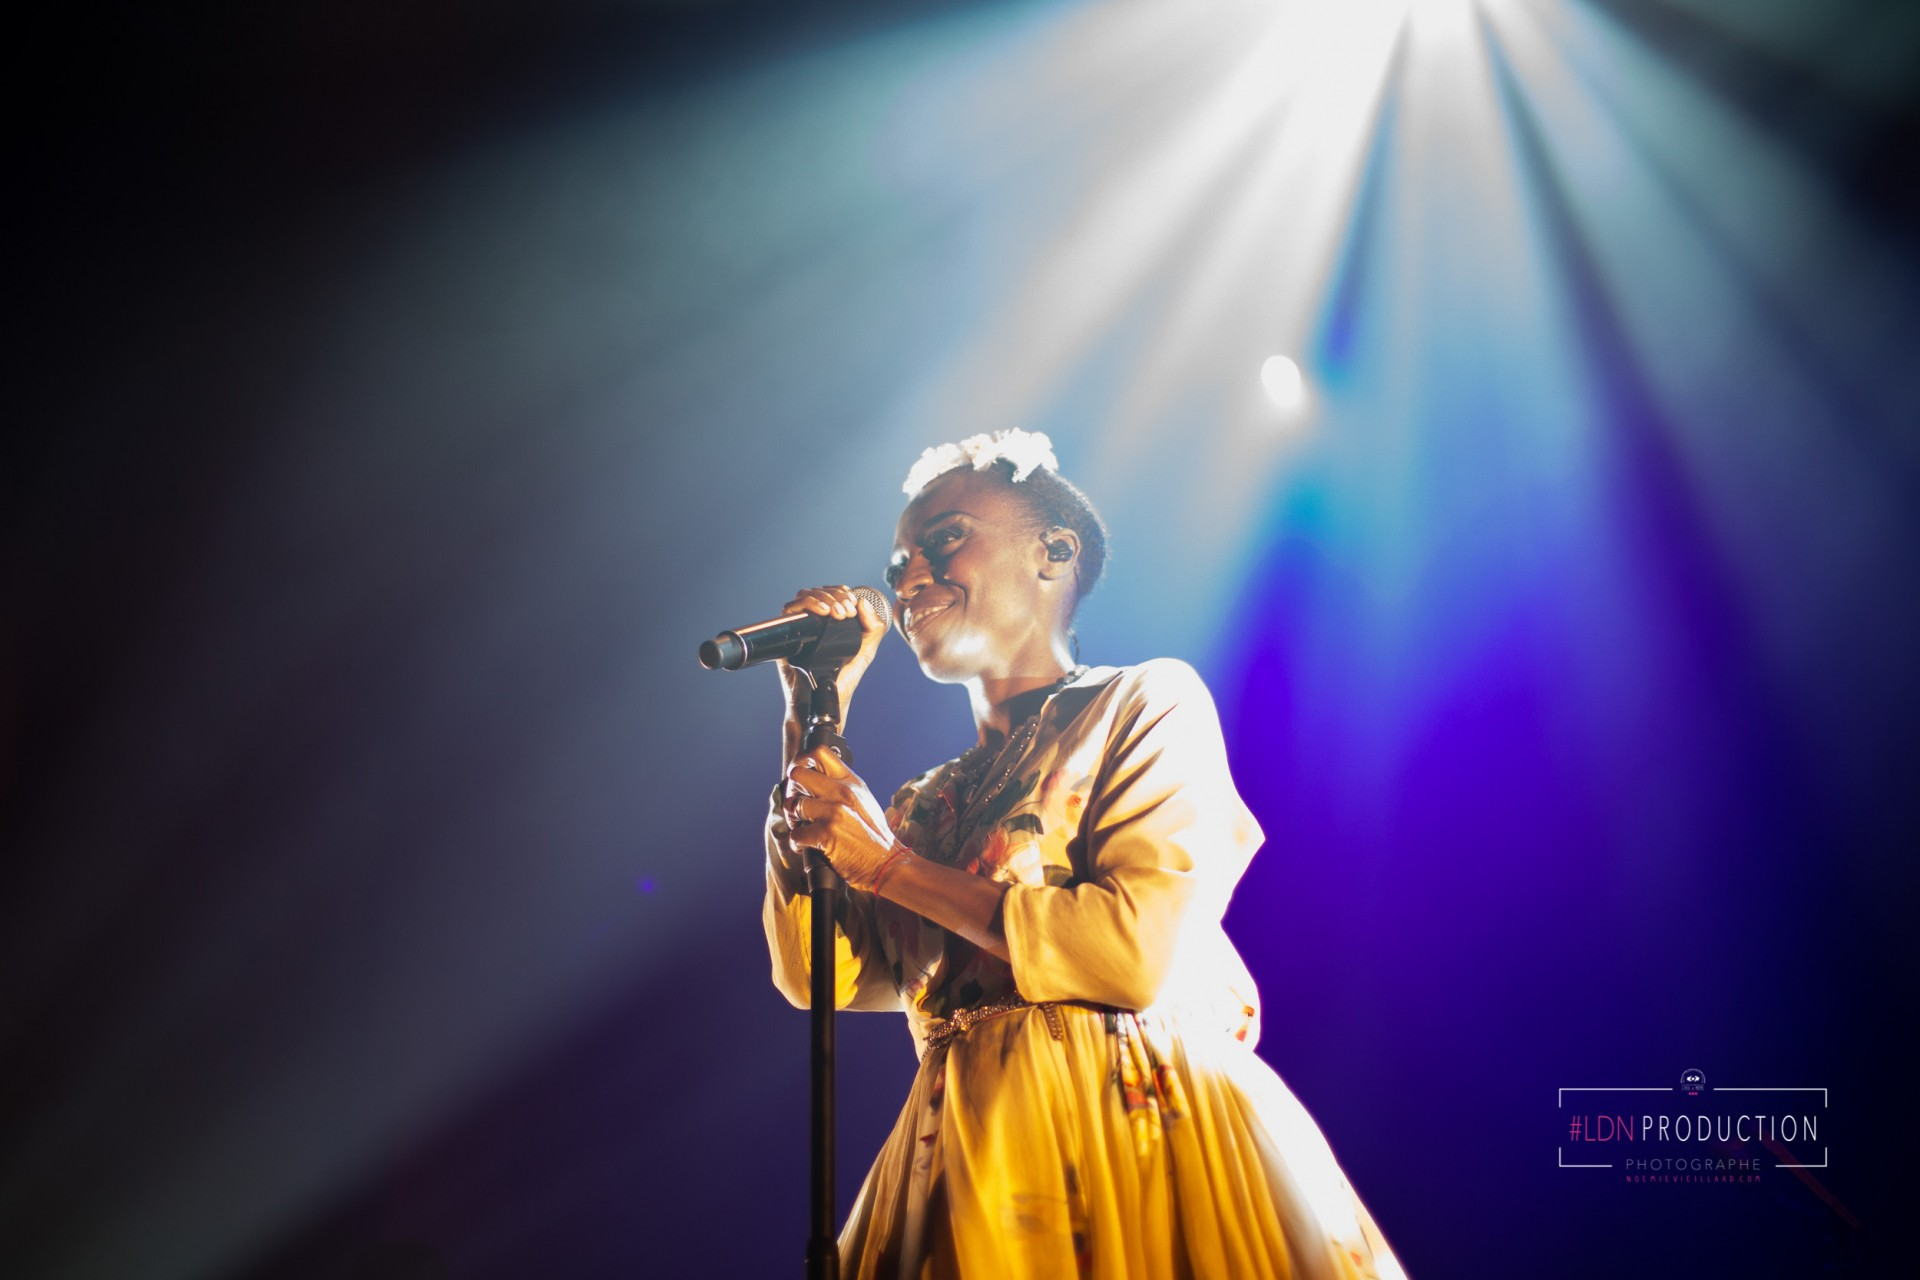 photo-skye-edwards-morcheeba-©-noemie-vieillardIMG_0187